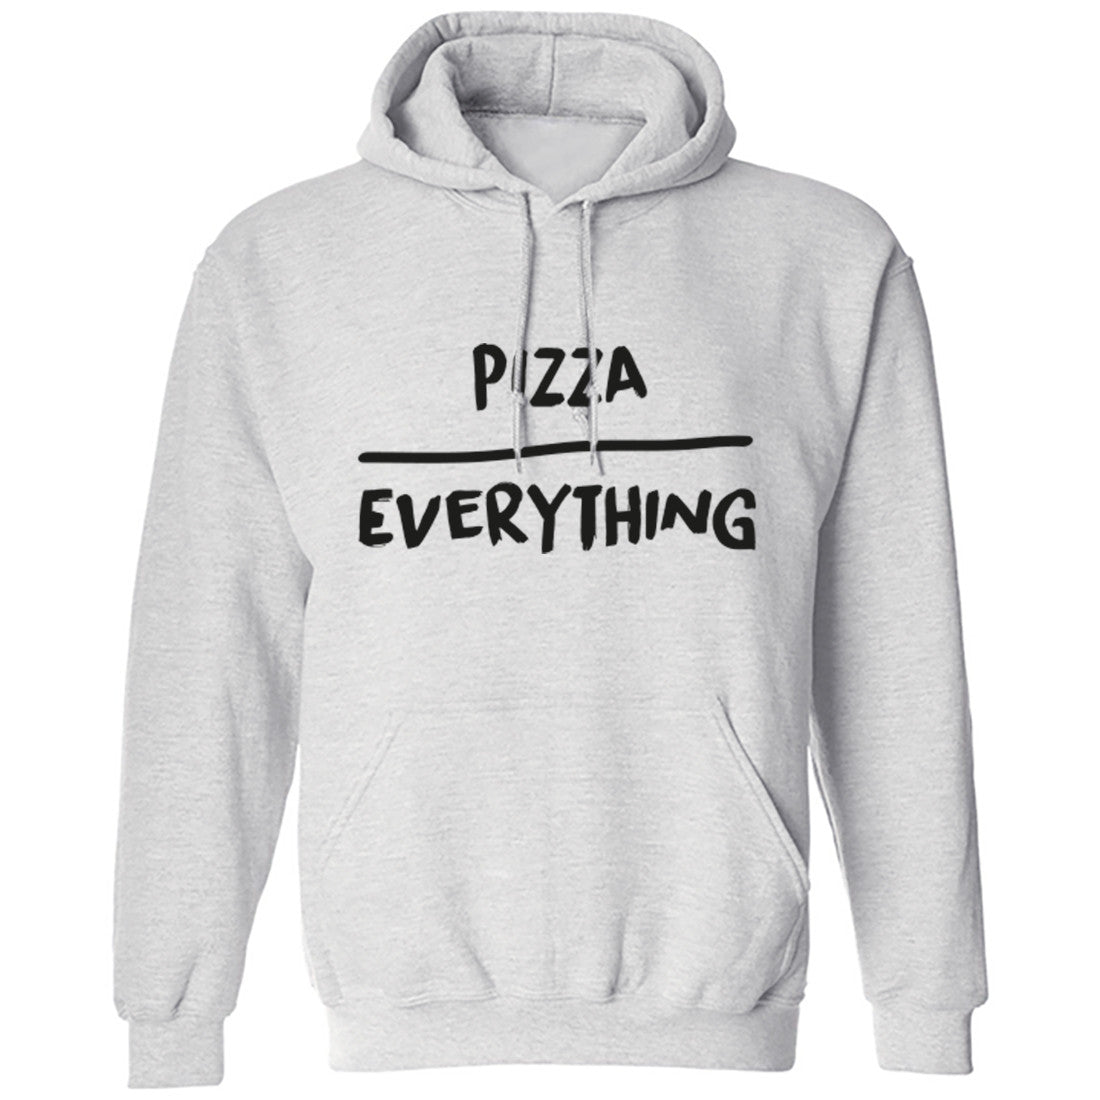 Pizza Over Everything Hoodie K0120 - Illustrated Identity Ltd.